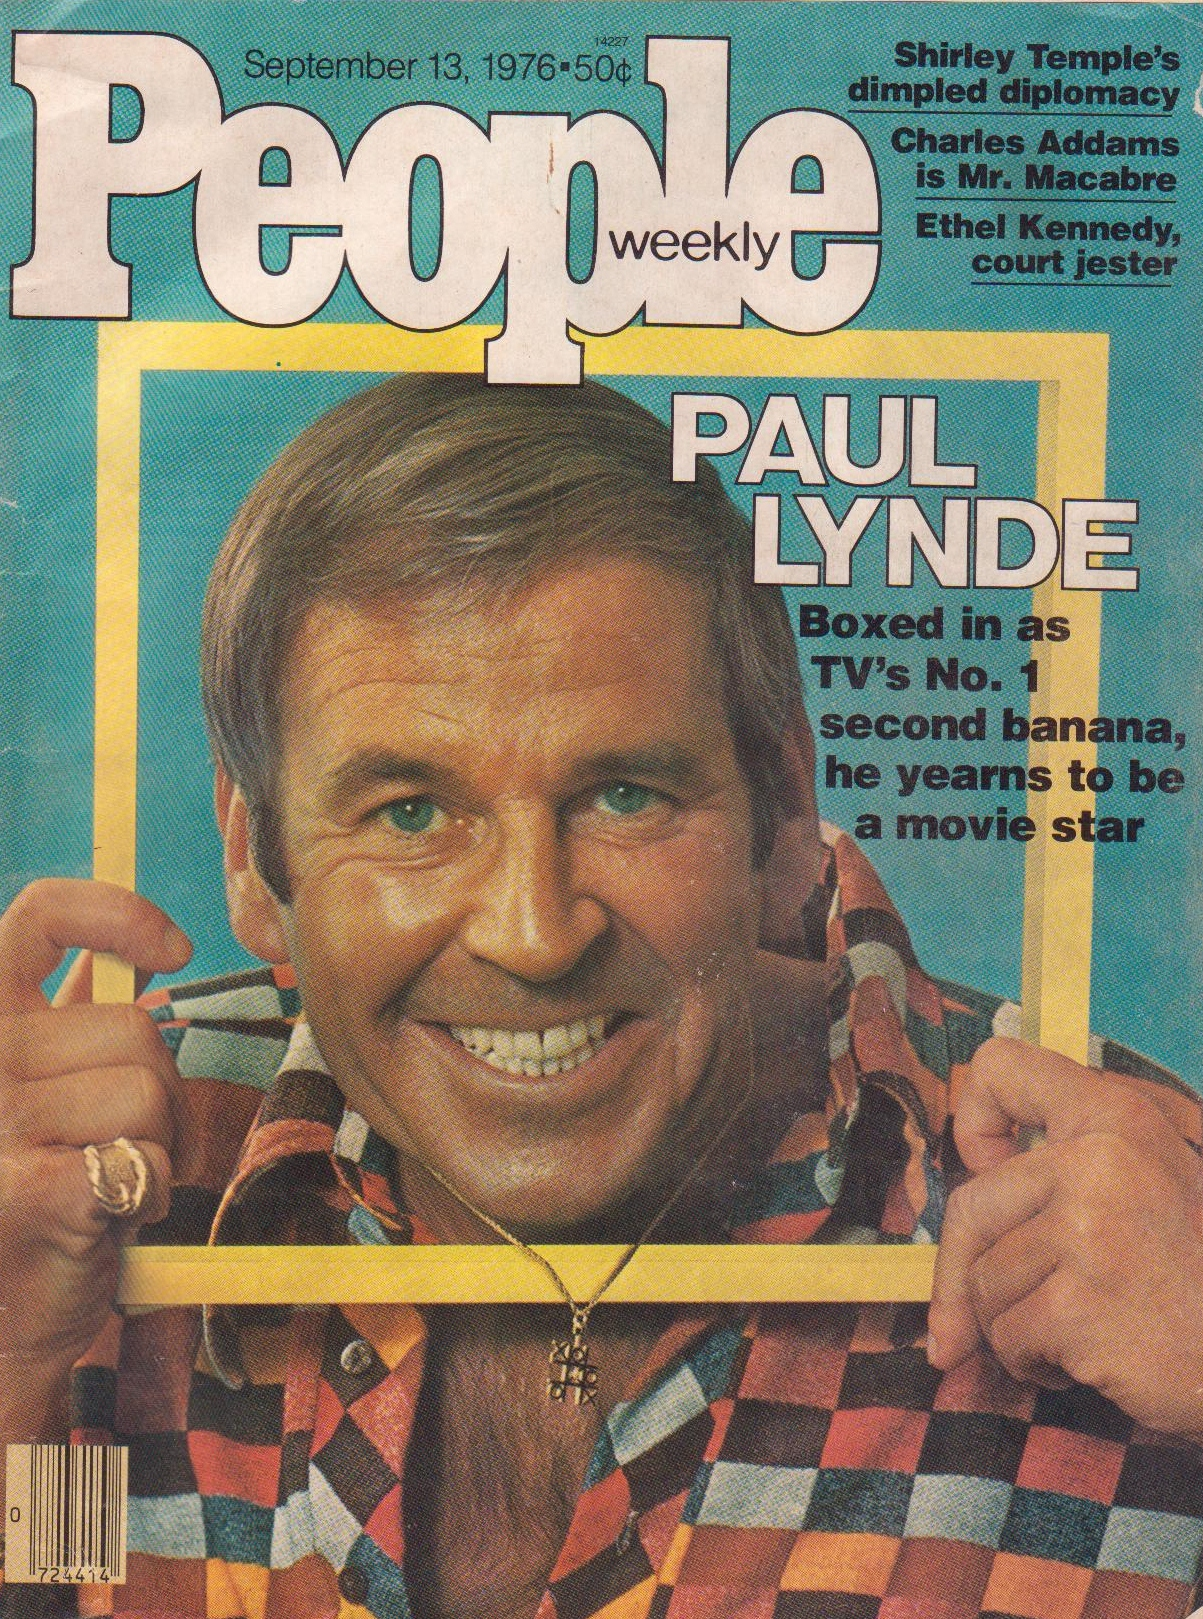 Paul Lynde on People cover